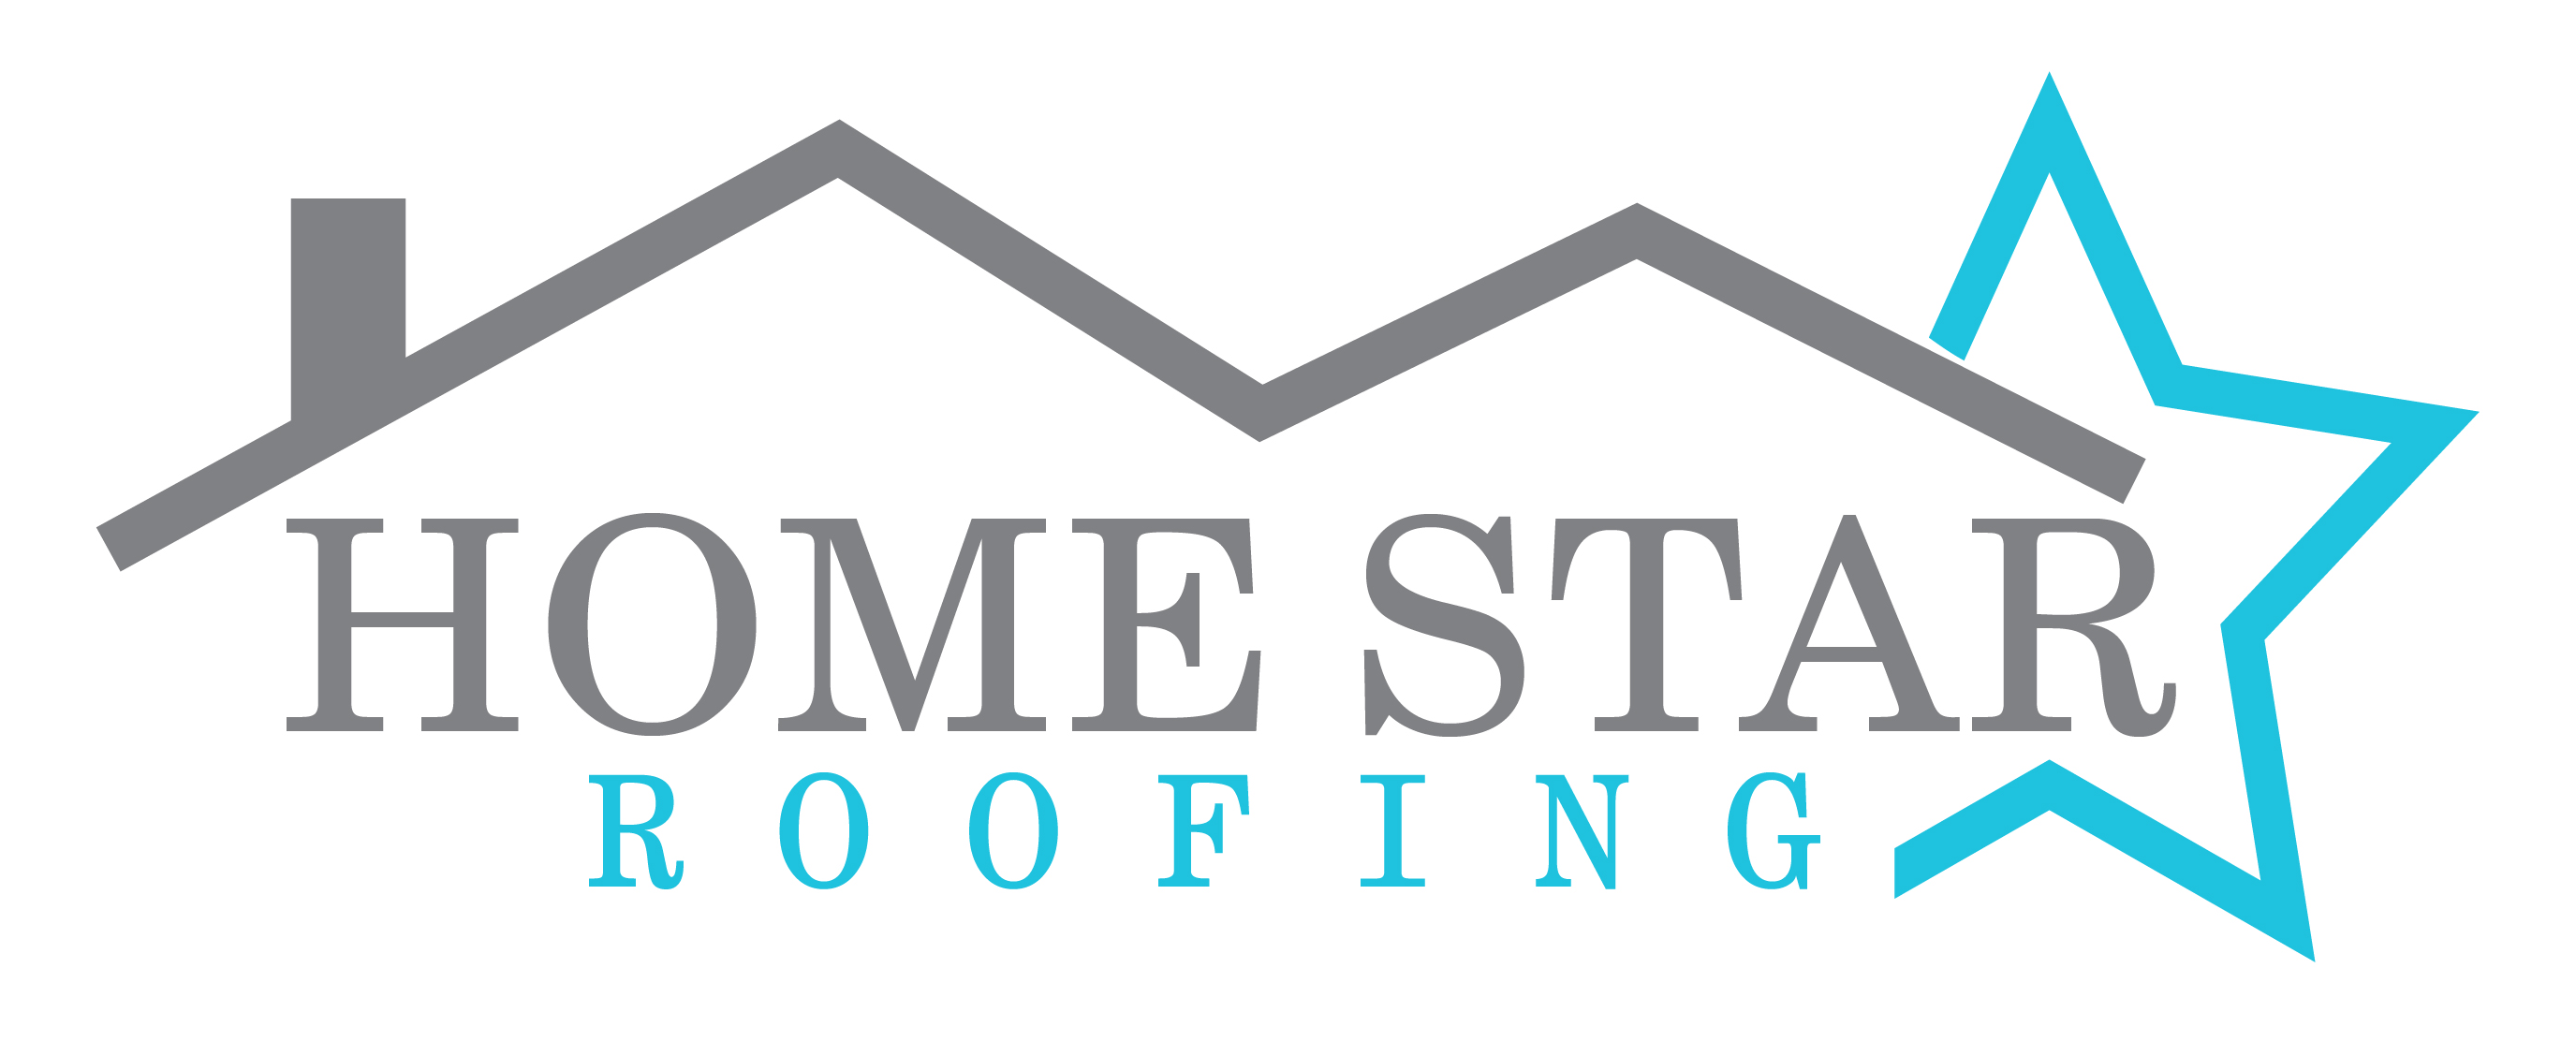 Home Star Roofing